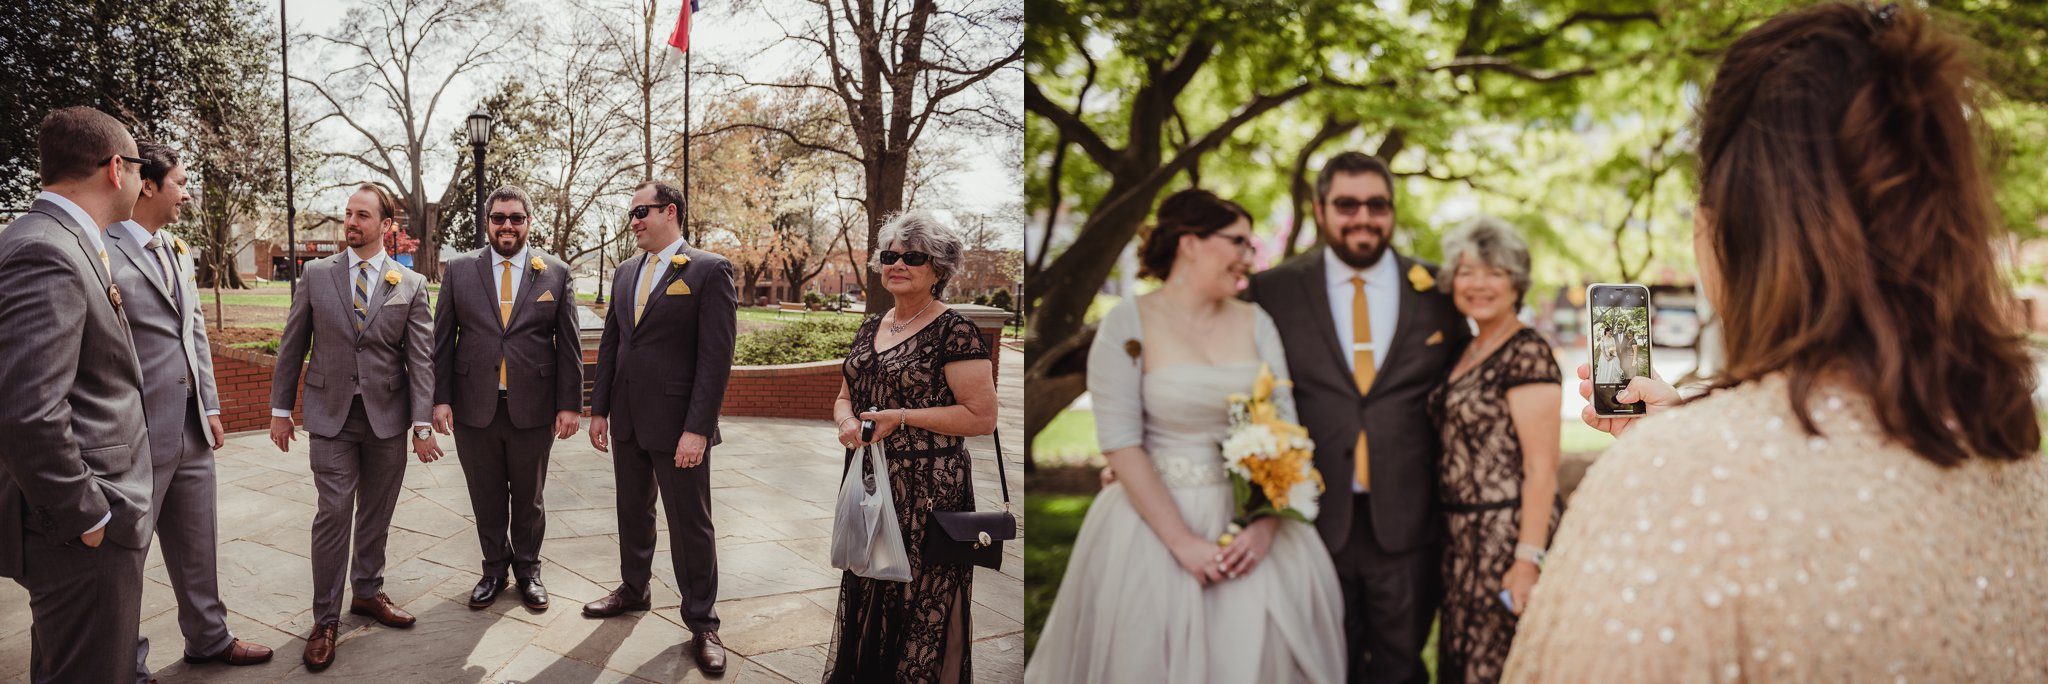 The groom and his friends and family before his wedding day in downtown Raleigh, picture by Rose Trail Images.